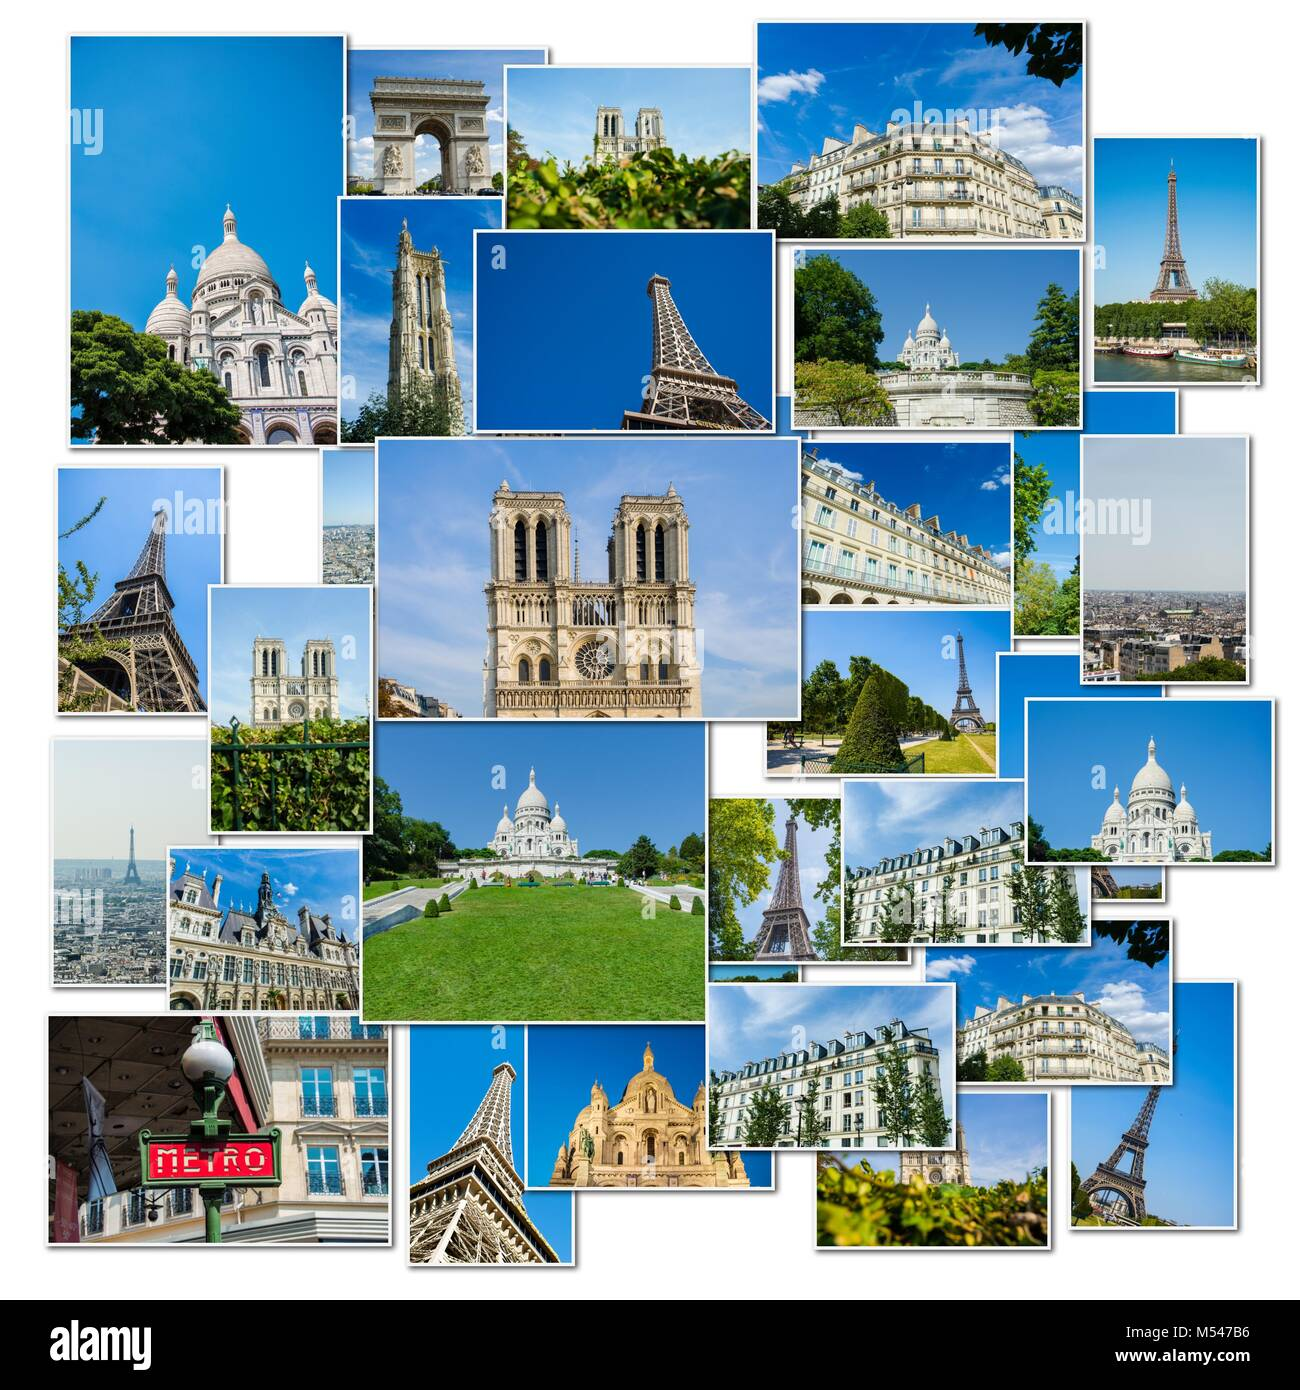 Collage of paris photos collection - Stock Image